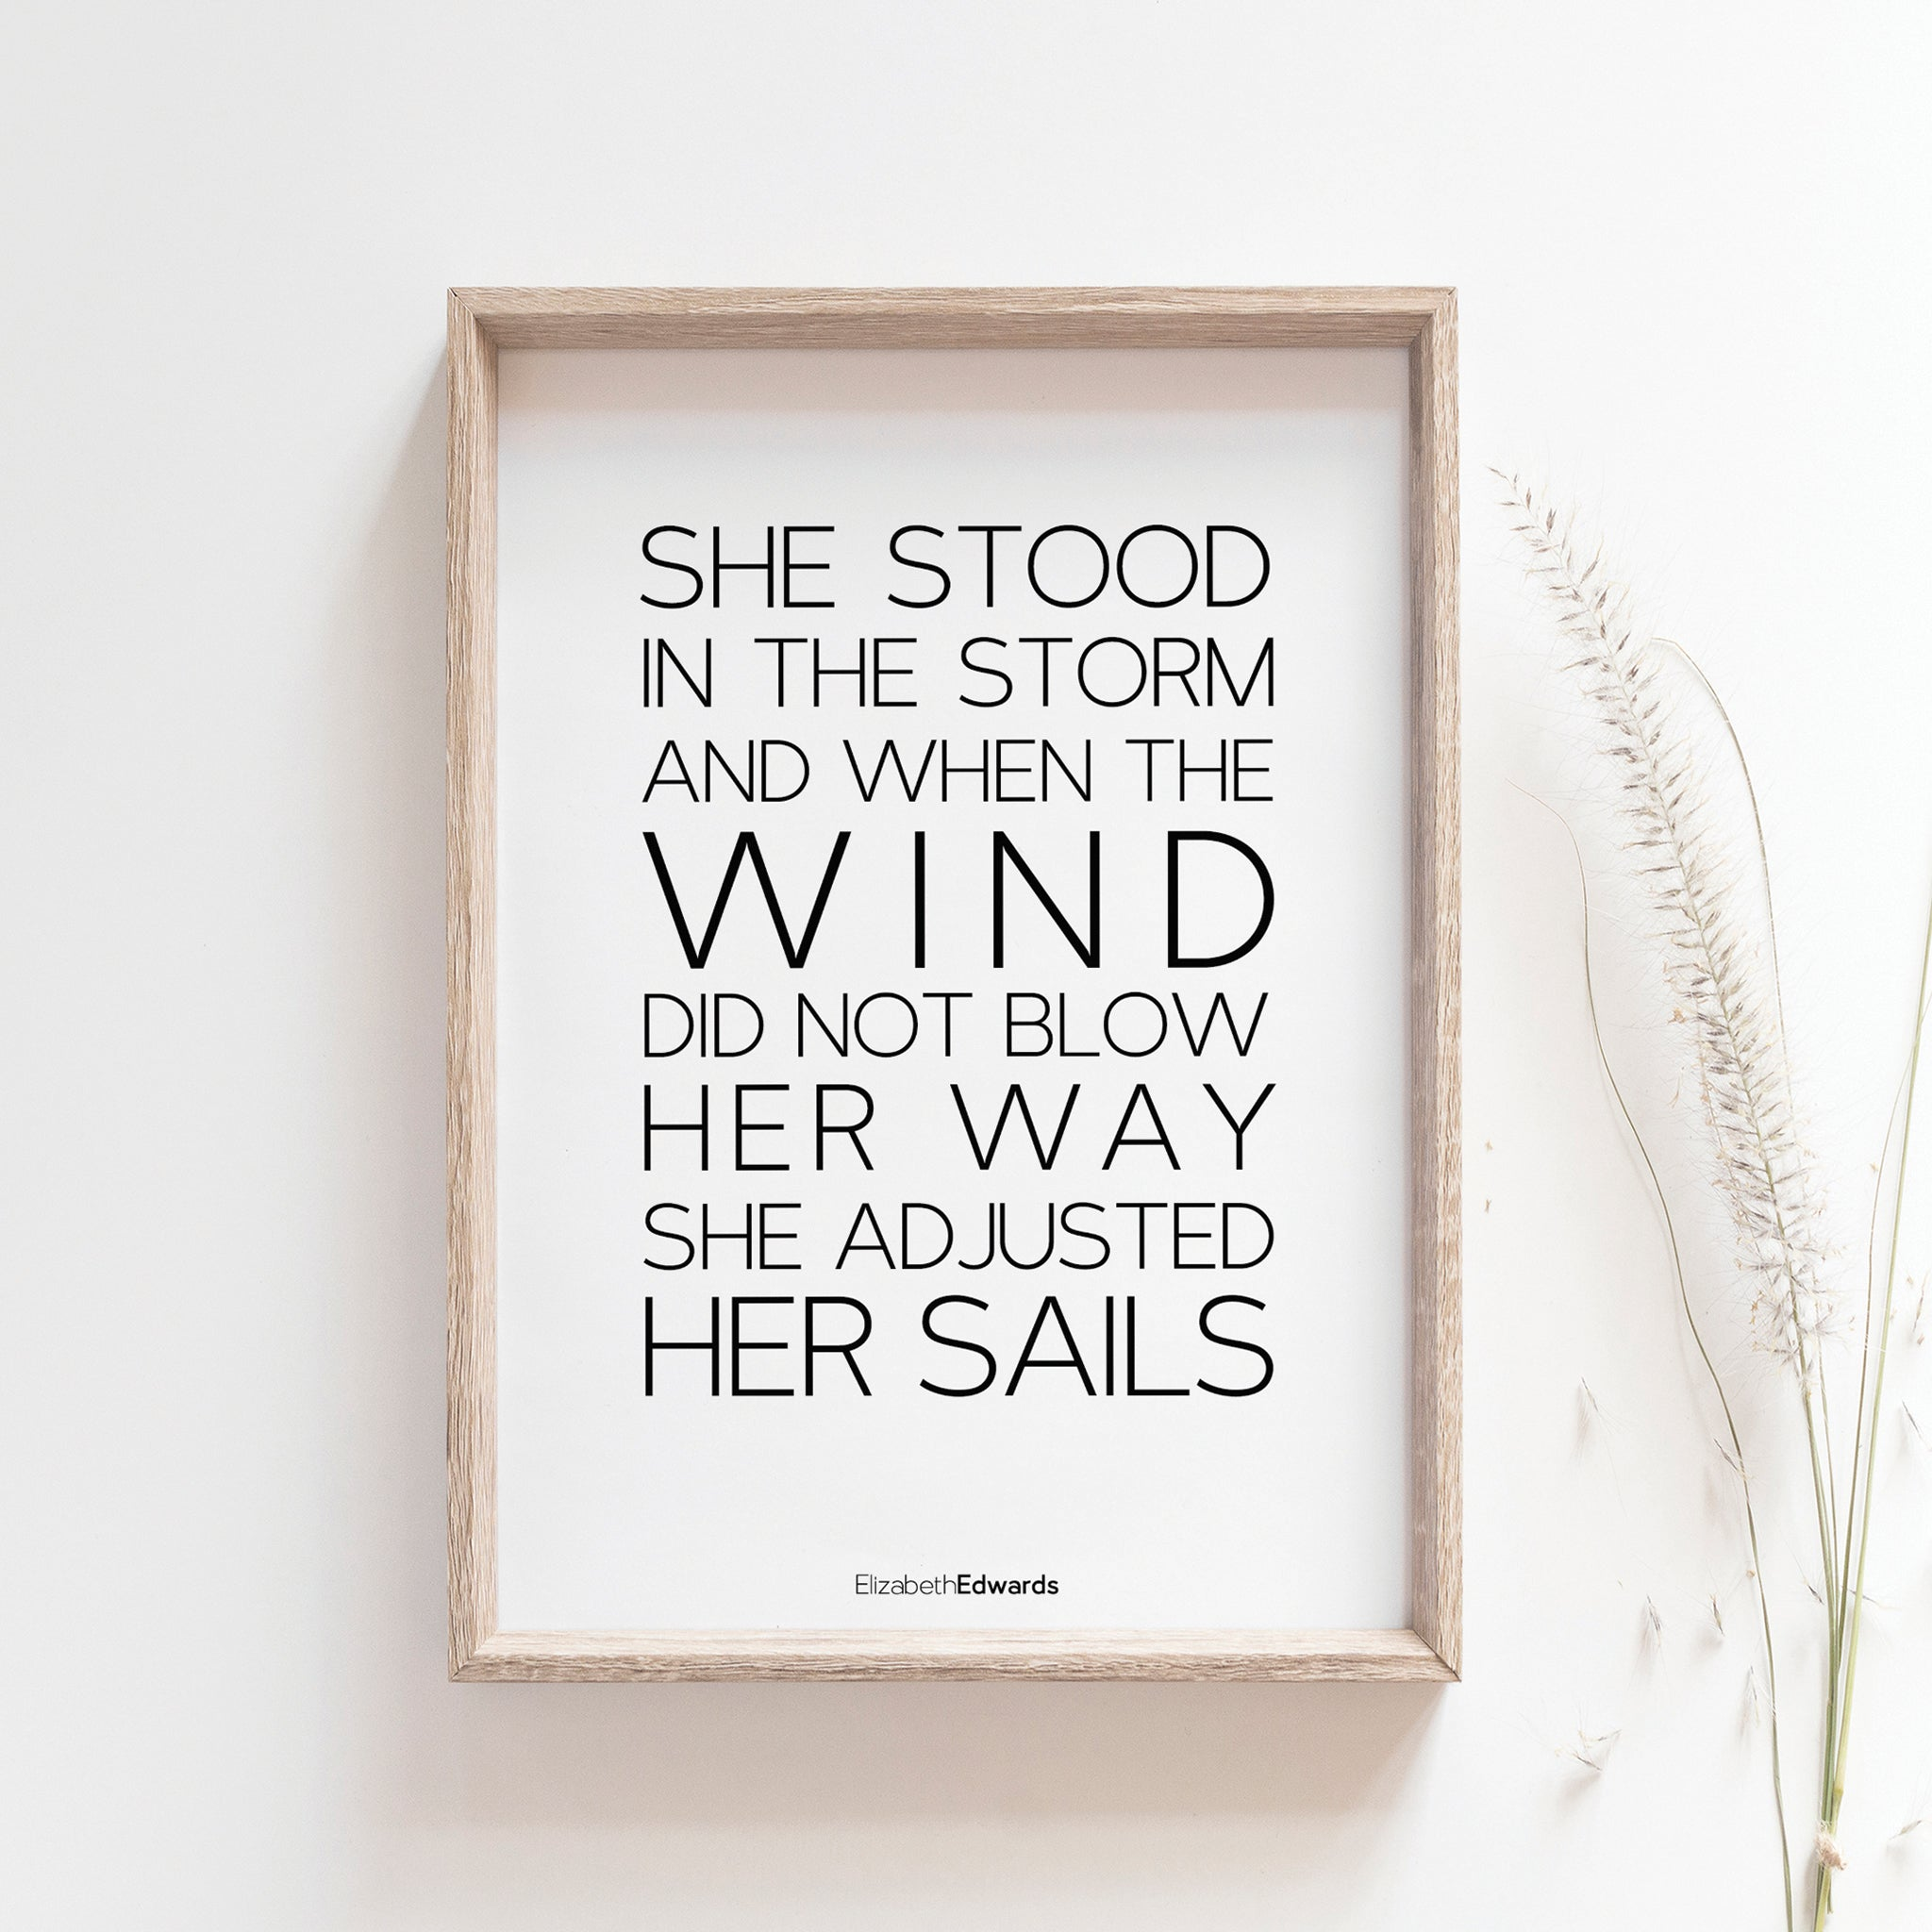 She stood in the storm and when the wind did not blow her away, she adjusted her sails inspirational wall art poster